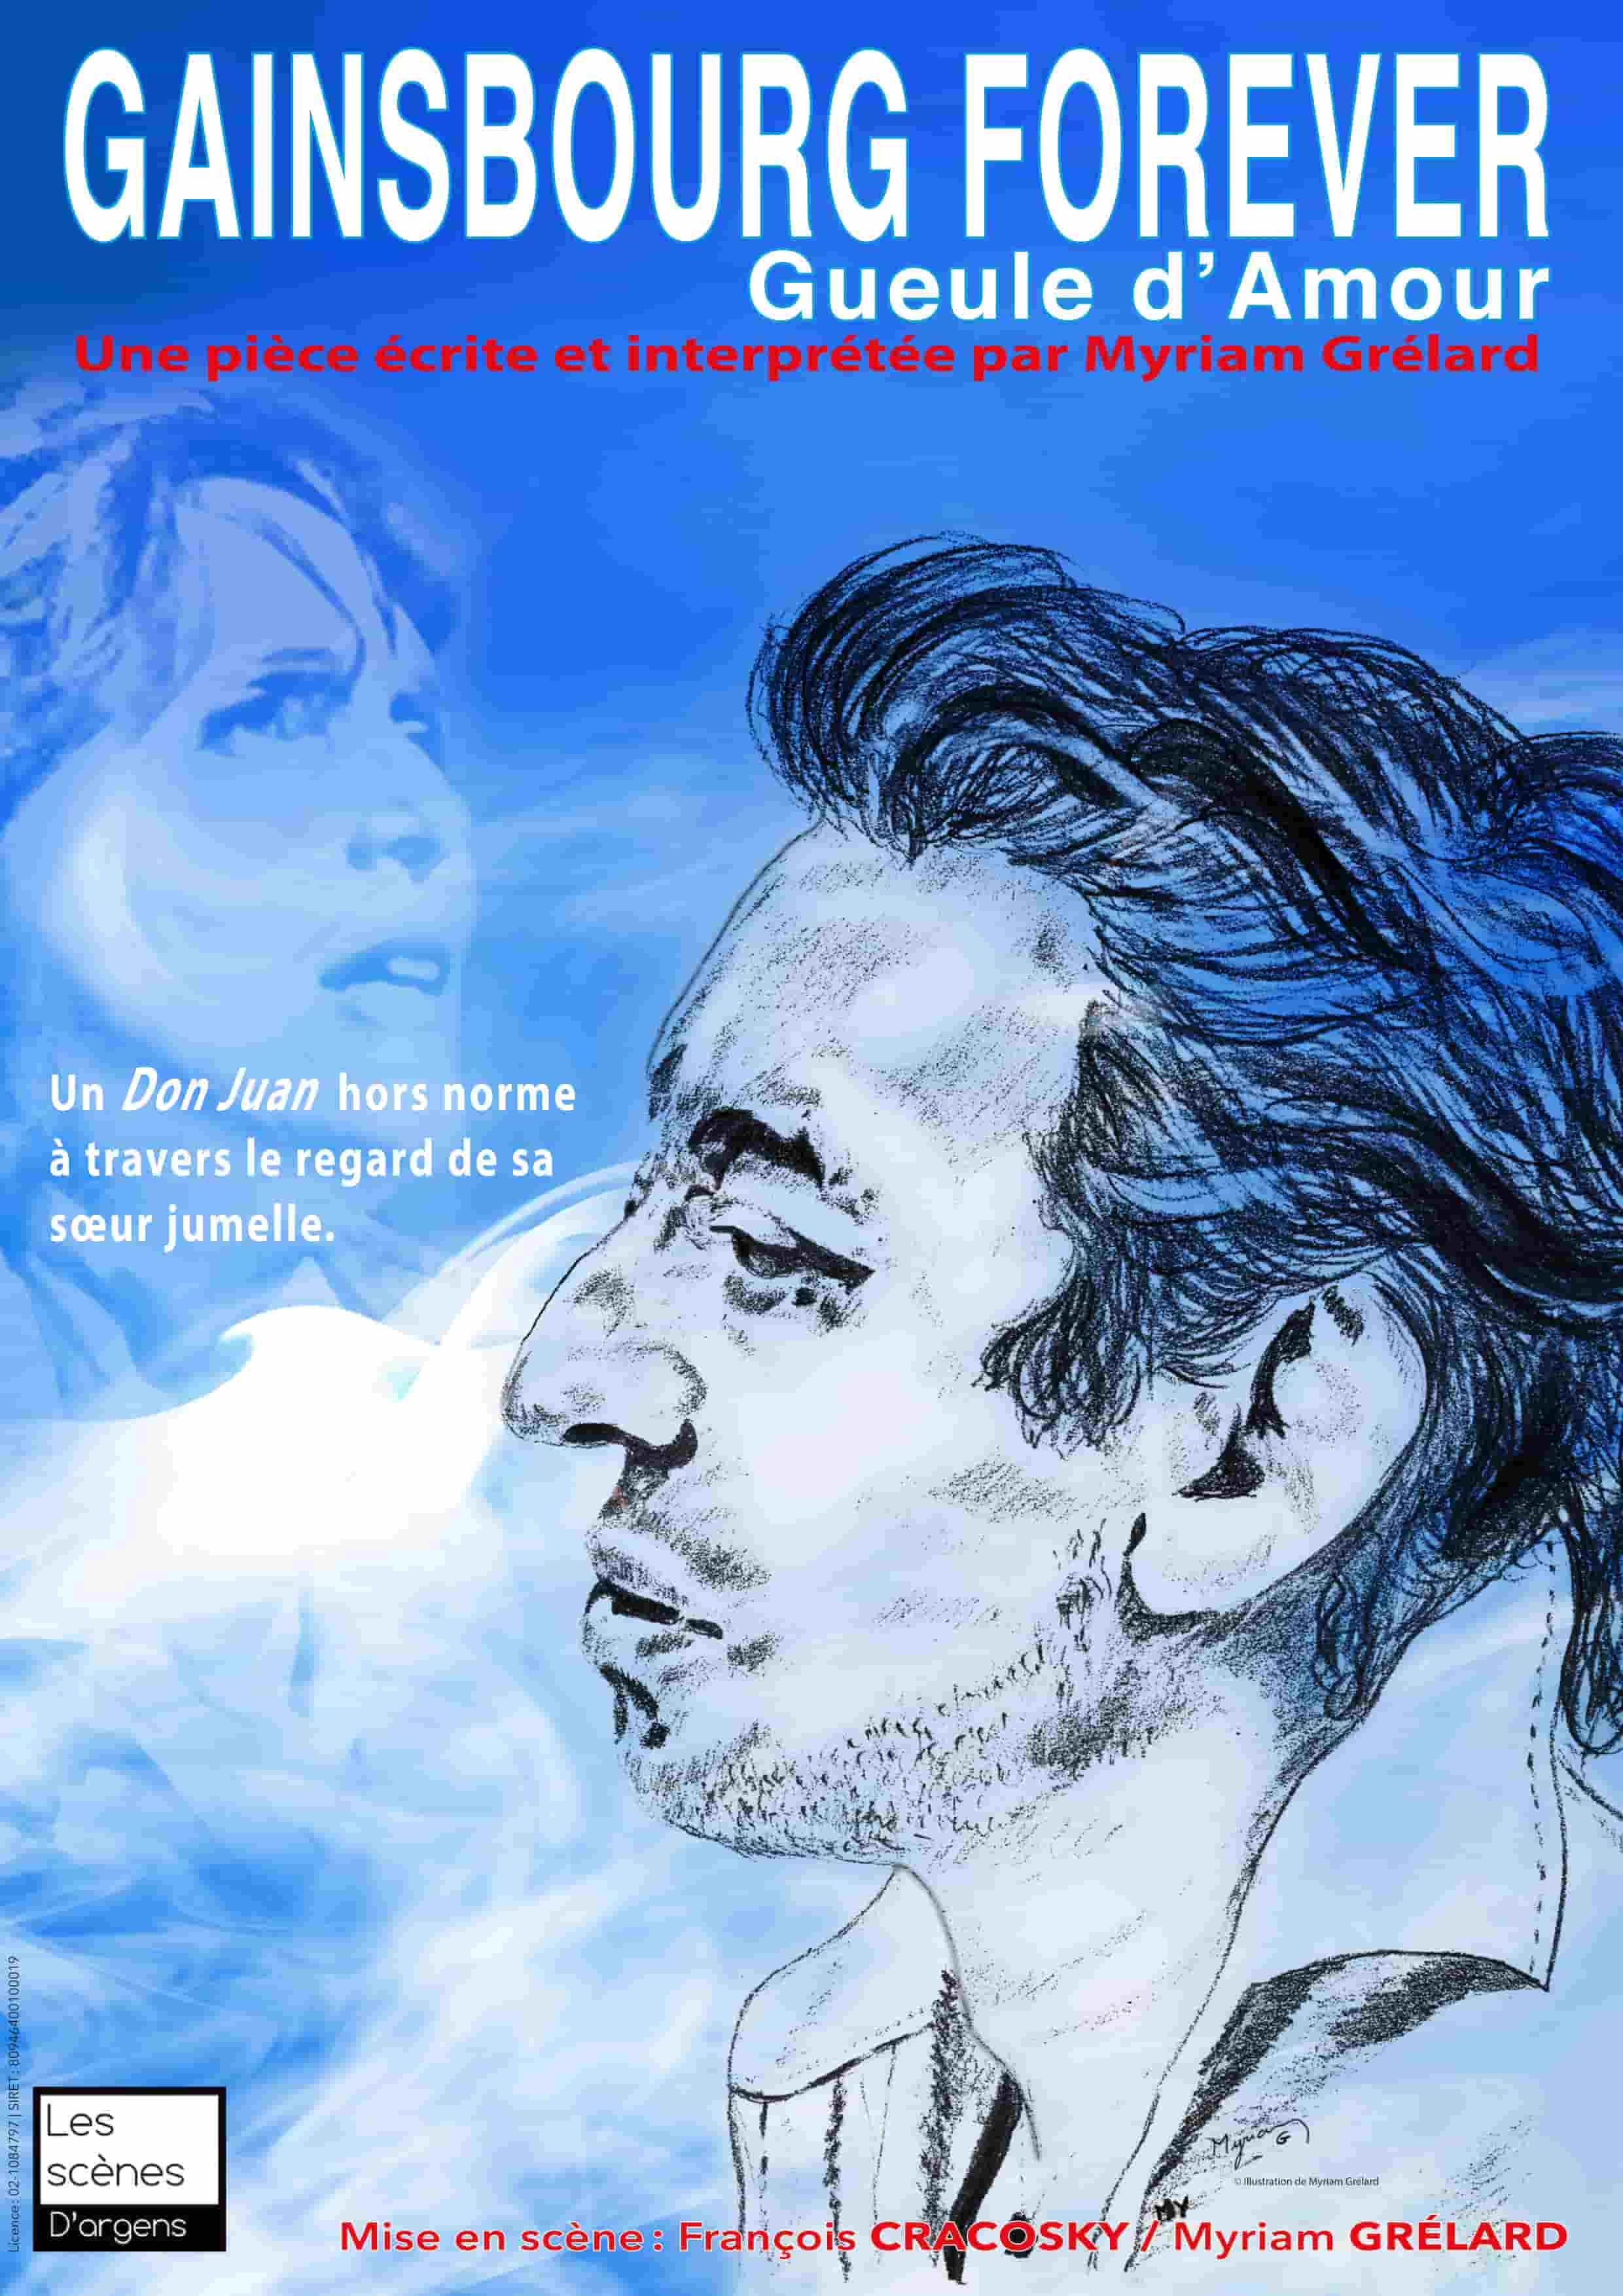 Gainsbourg forever - Marseille - Théâtre - Musique - Spectacle